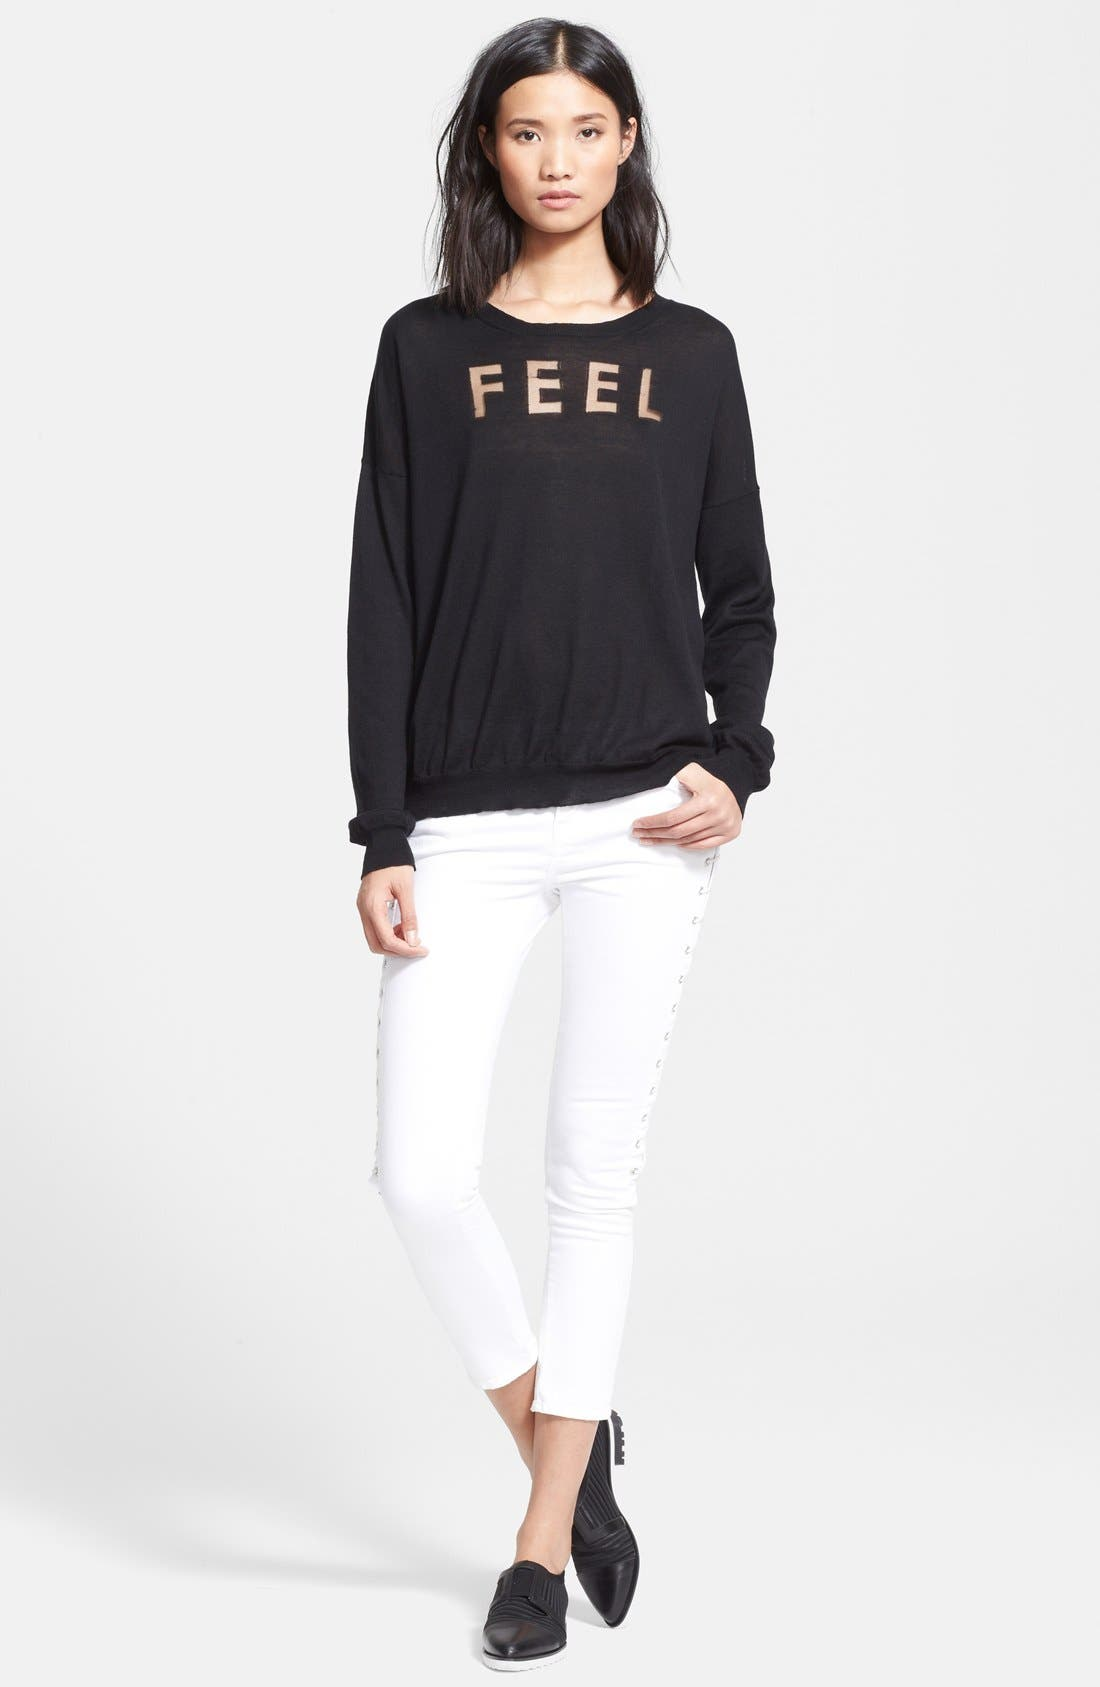 Alternate Image 3  - EACH X OTHER 'Feel' Burnout Sweater